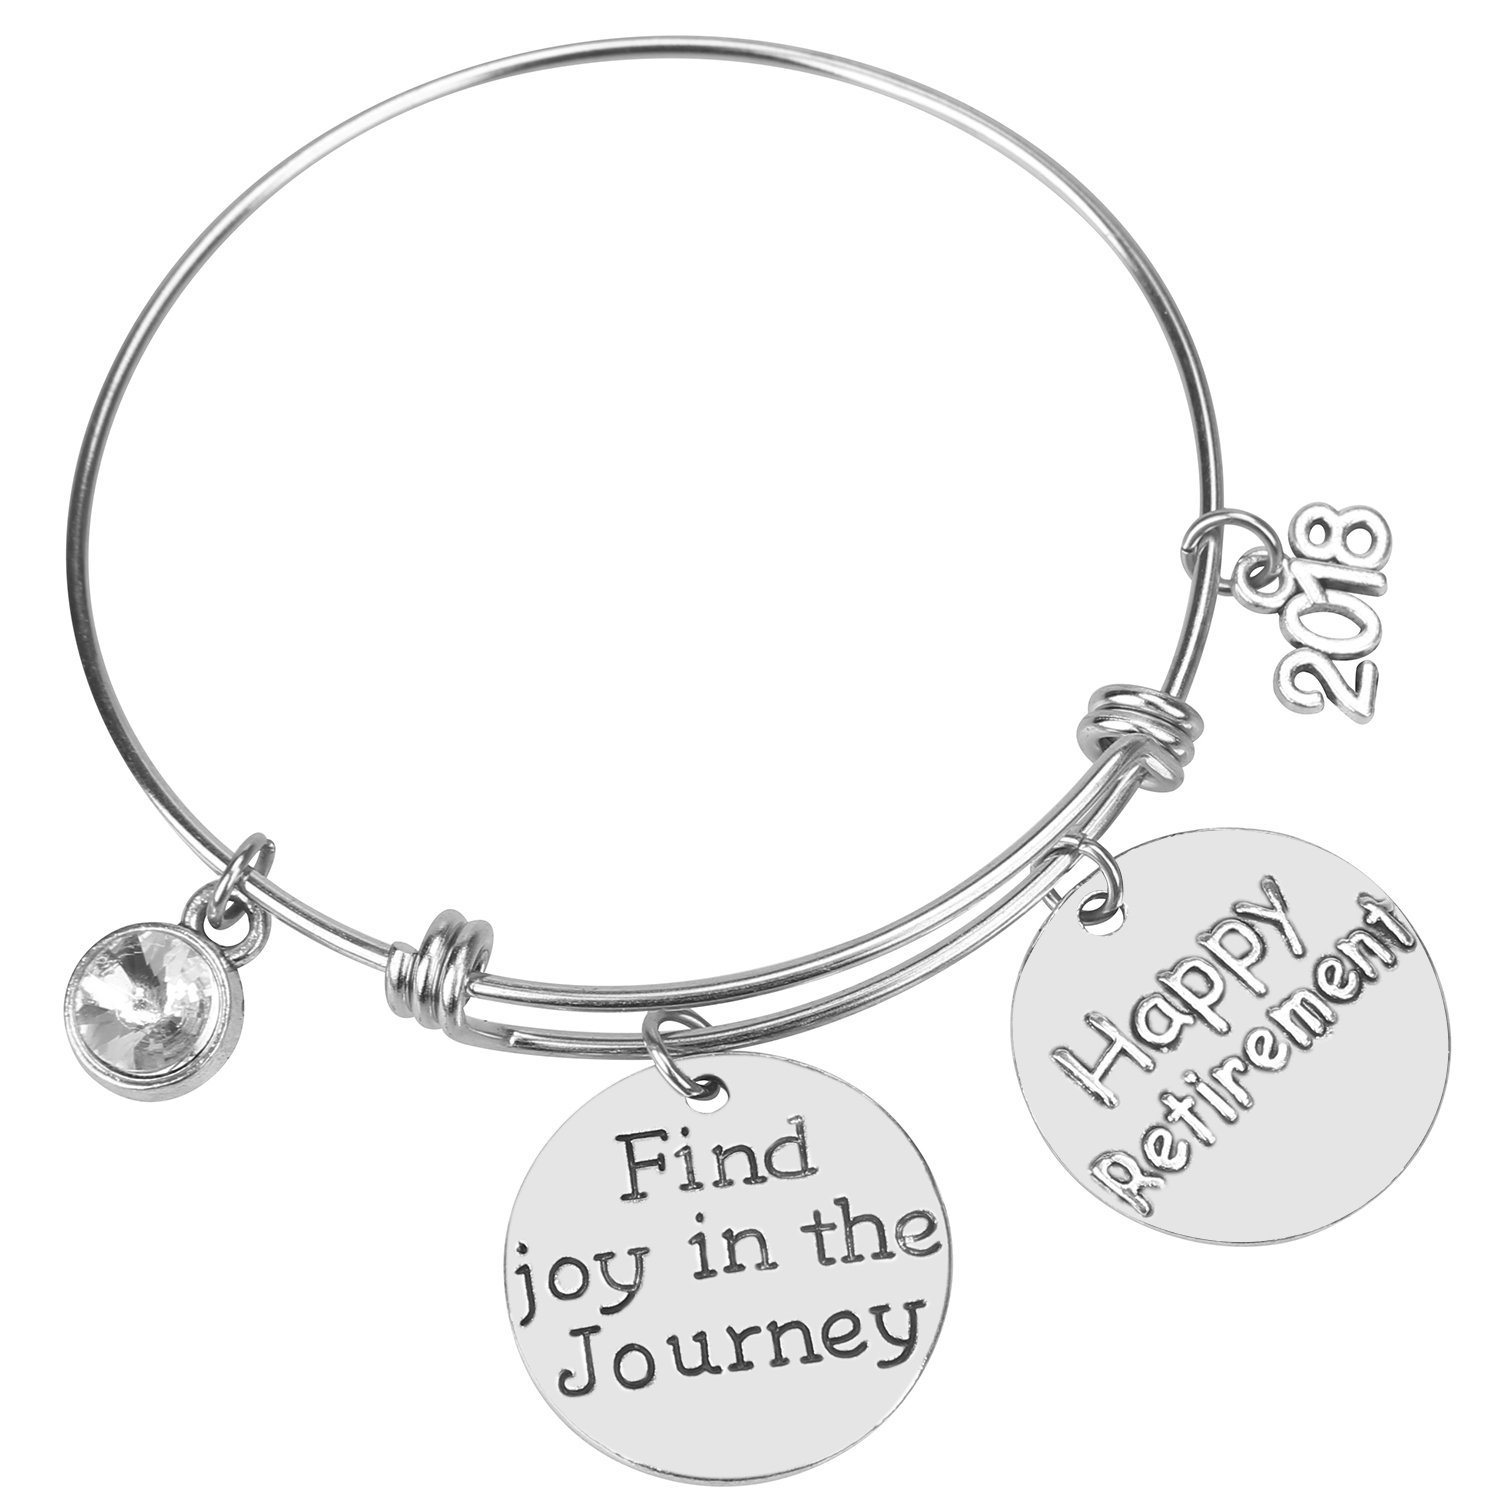 Alxeani Happy Retirement 2018 Find Joy in The Journey Expandable Silver Charm Bracelet Adjustable Bangle Office Worker Gift Retire